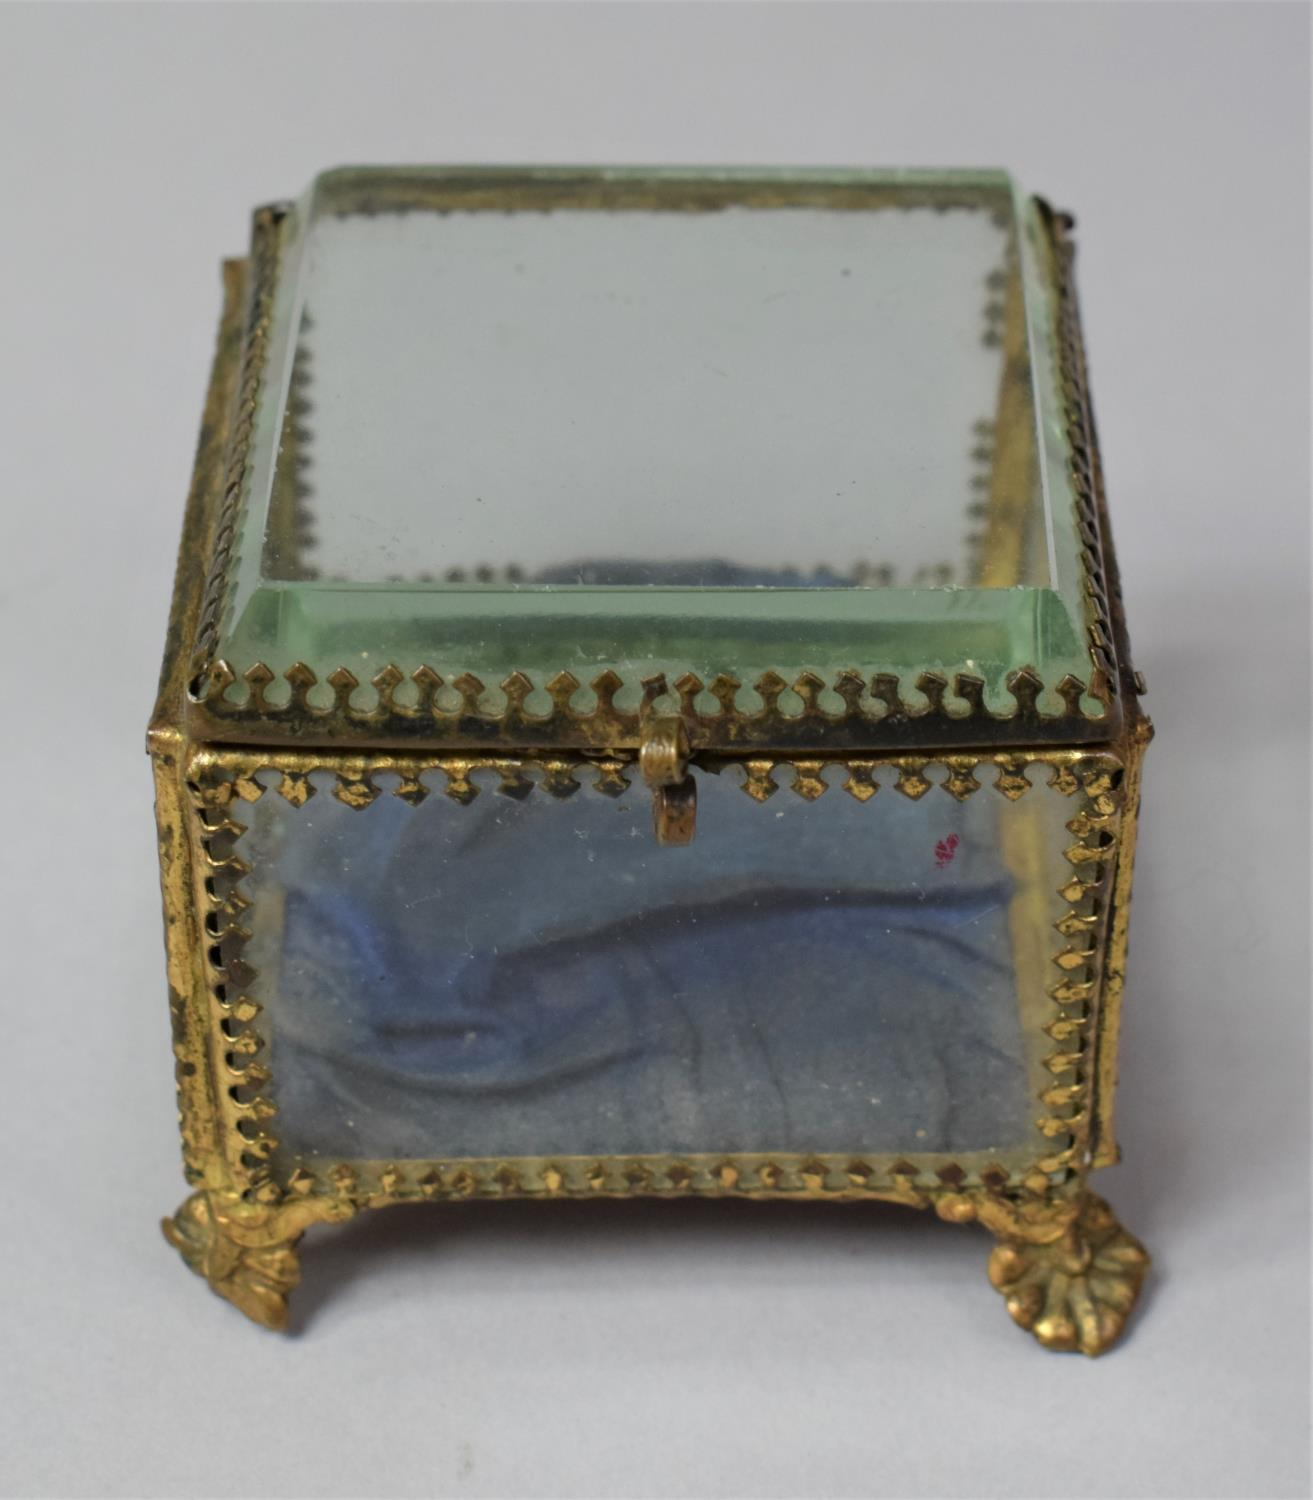 A Late 19th Century French Ormolu Framed Glass Jewellery Box on Four Scrolled Feet, 6.5cm Square - Image 2 of 3